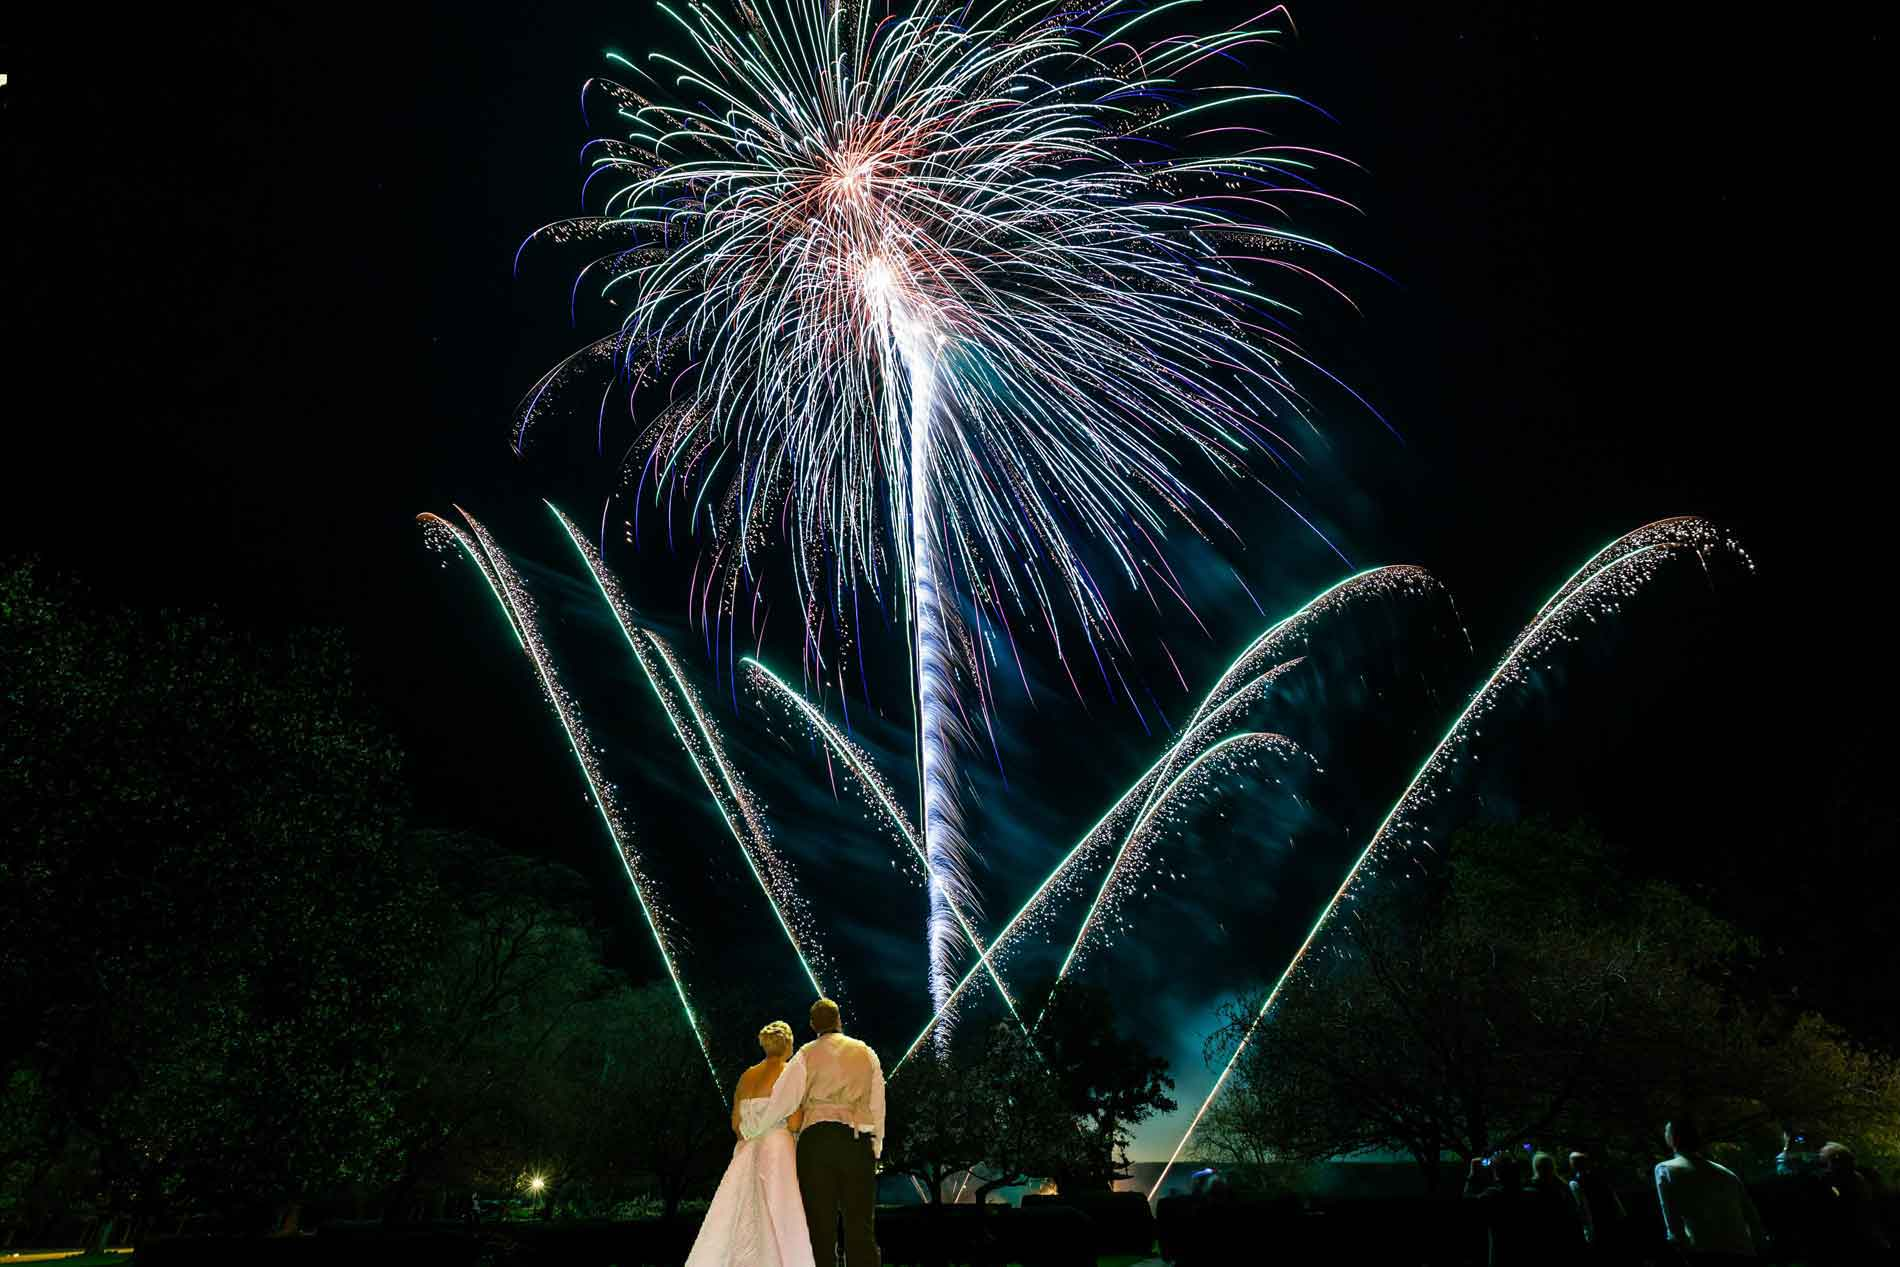 Stunning firework displays that end your wedding day with a spectacular bang